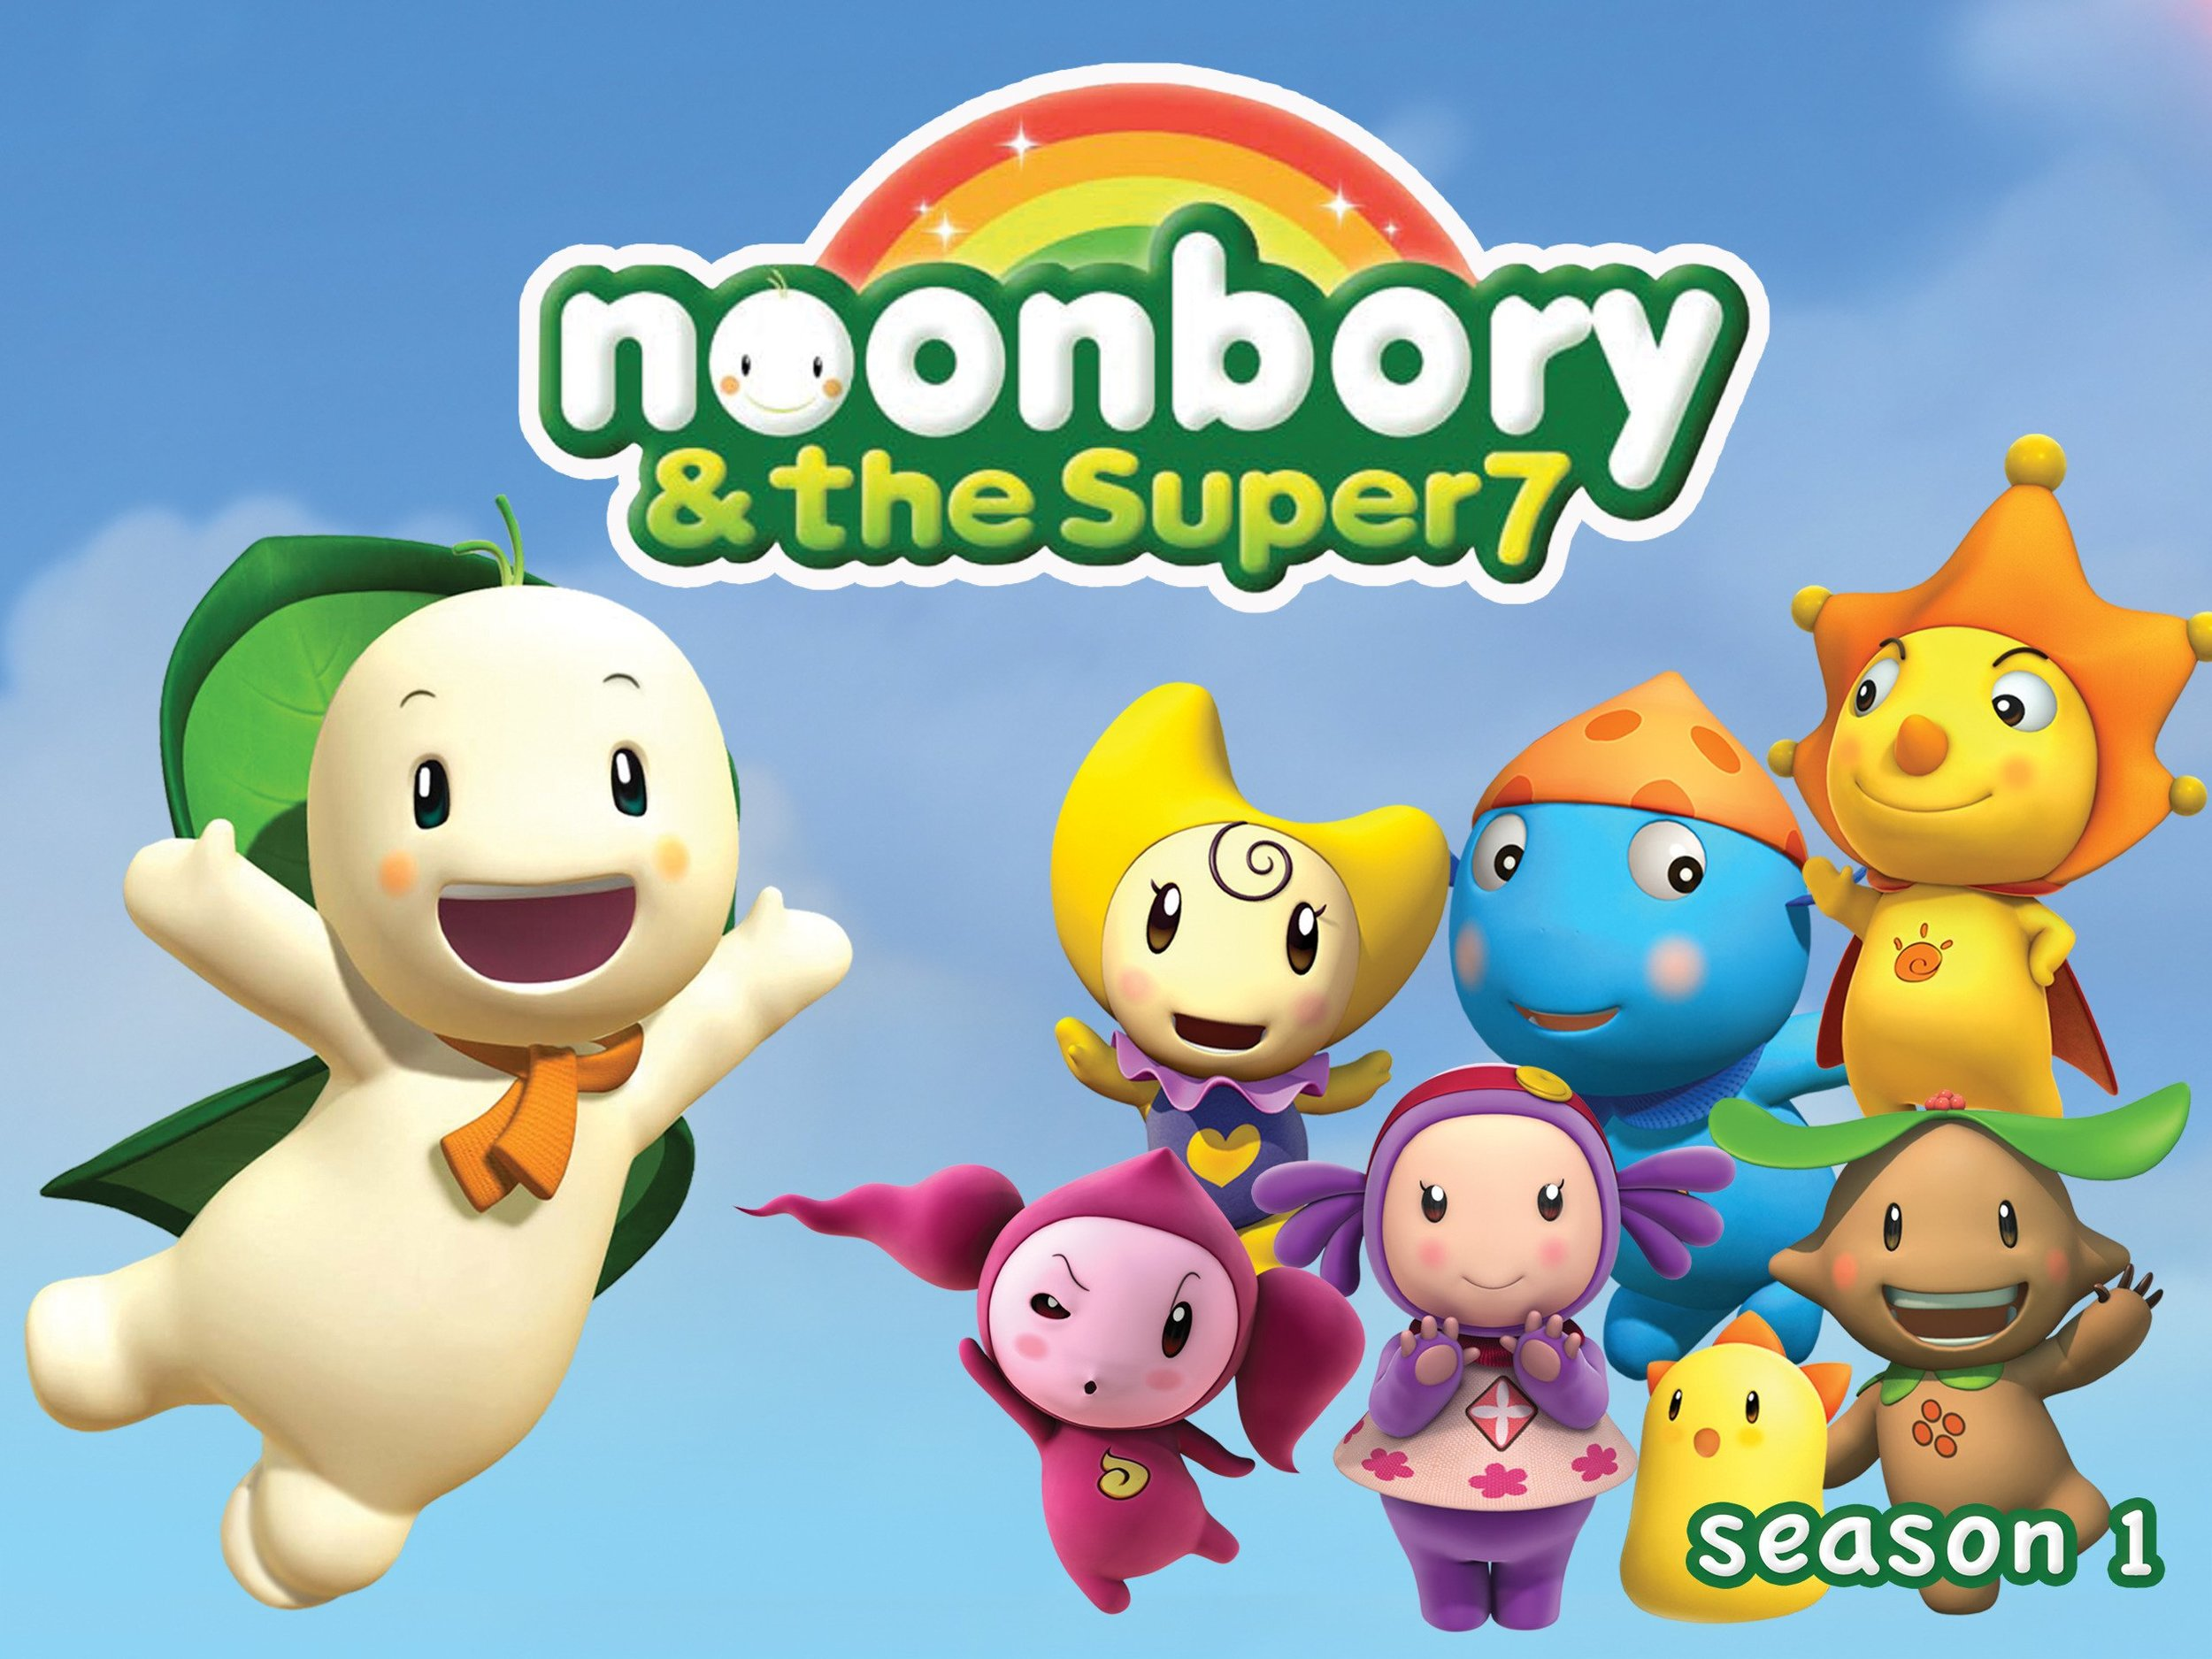 NOONBORY AND THE SUPER 7 - (Animated Series, Released 2009(A group of superheros with supersenses works to save the day when villainy threatens in the whimsical world of Toobalooba. Each hero has a supersense that can be used with the others' senses to foil trouble. Noonbory and his team also teach children how to use their special skills and talents in combination with others' to solve problems.  Brent Hirose voices Noonbory, leader of the Super 7.